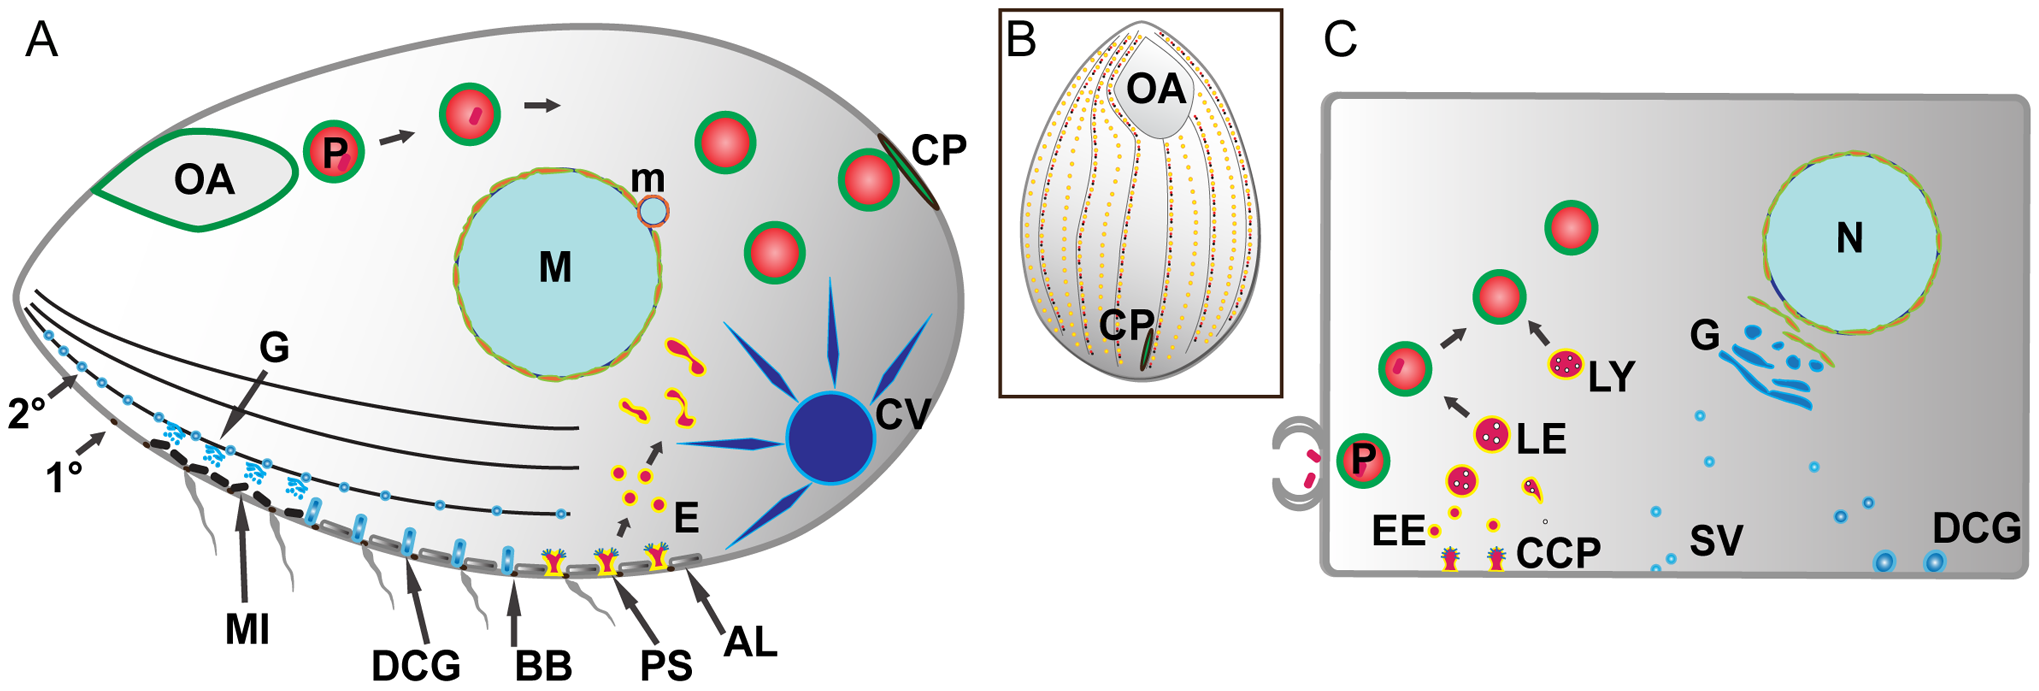 Pathways of membrane traffic in <i>Tetrahymena</i> and in animal cells.